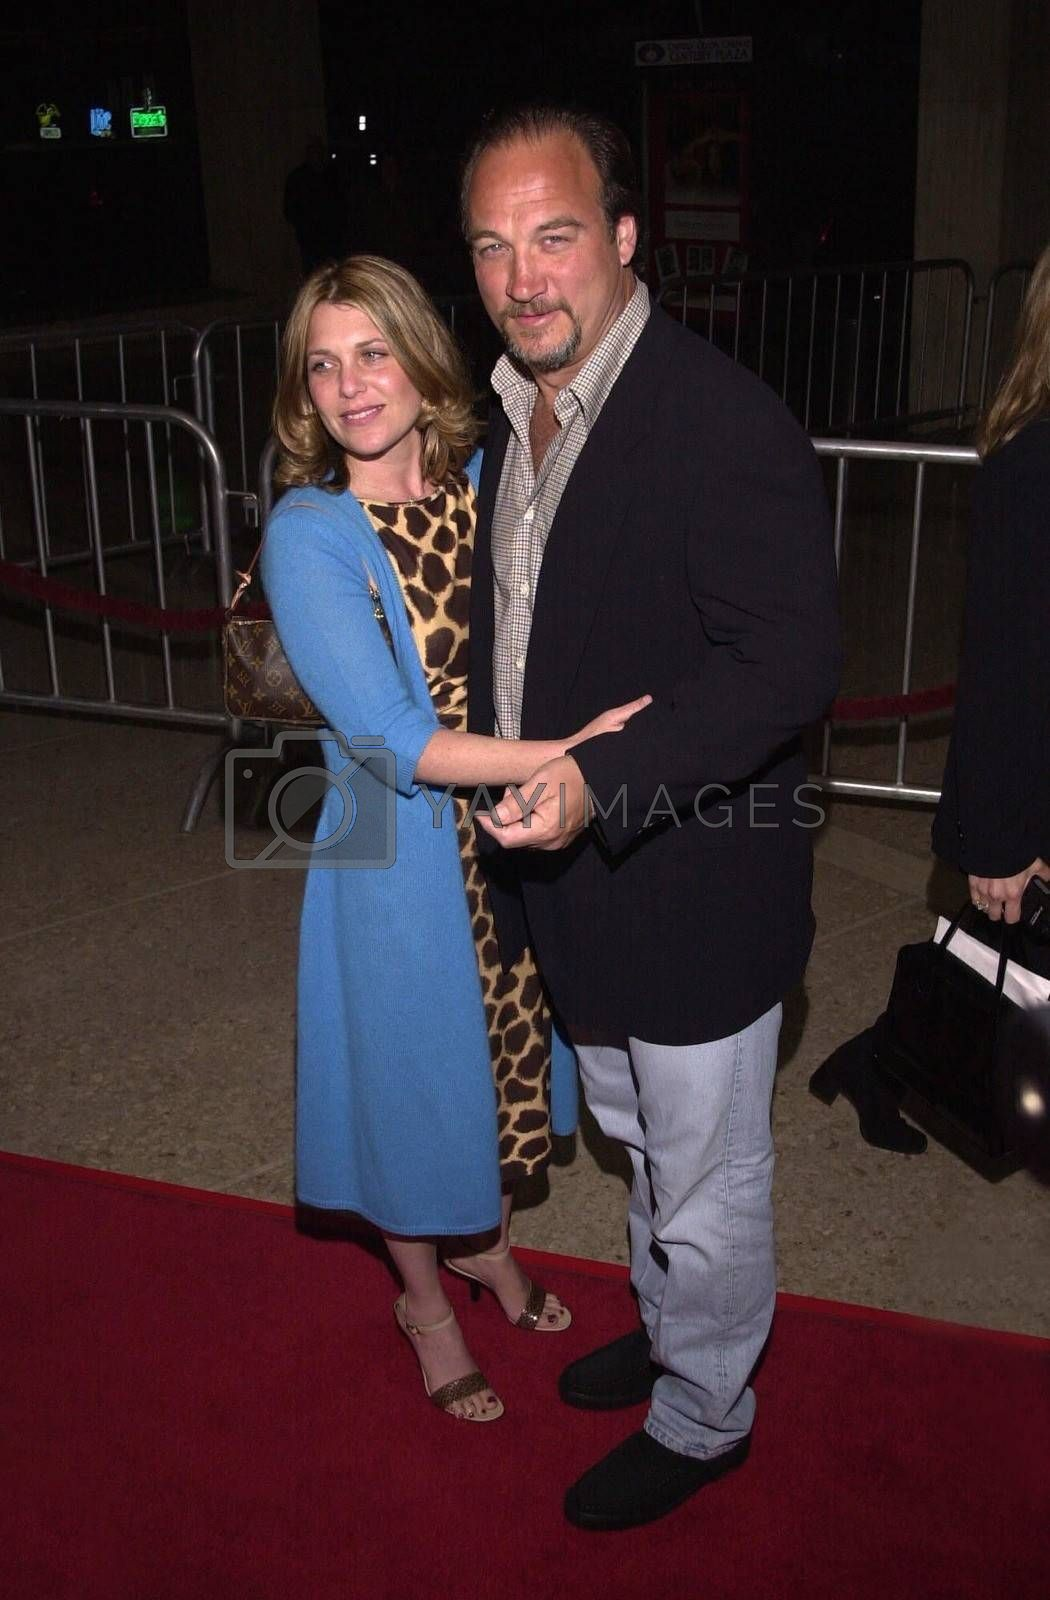 """James Belushi and Jennifer Sloan at the premiere of MGM's """"RETURN TO ME"""" in Century City, 04-03-00"""